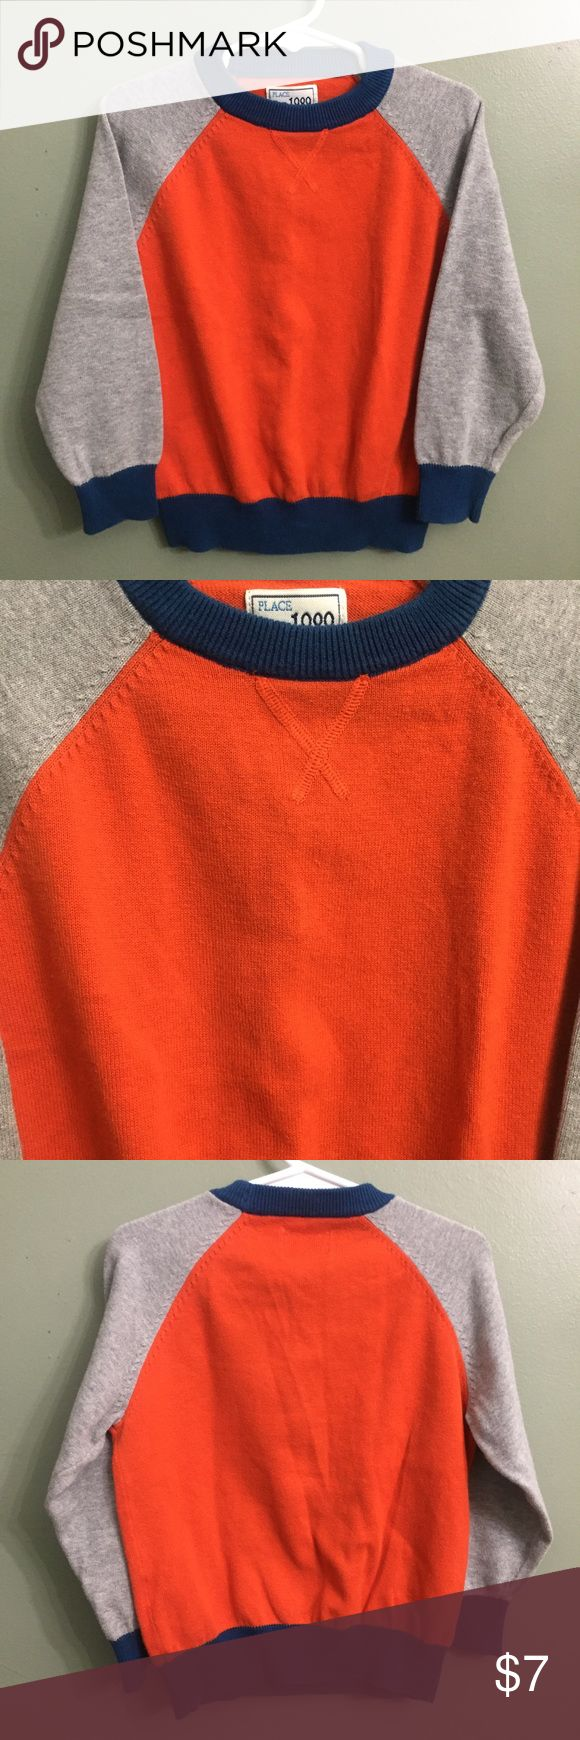 """B2G1EUC Children's Place Orange Sweater, XS 4 EUC Children's Place Orange Sweater, XS 4This item is eligible for the """"Buy 2 Get 1 Free"""" promotion in my closet with a minimum purchase of $15. Free items are to be of equal or lesser in value than the other items. Children's Place Shirts & Tops Sweaters"""